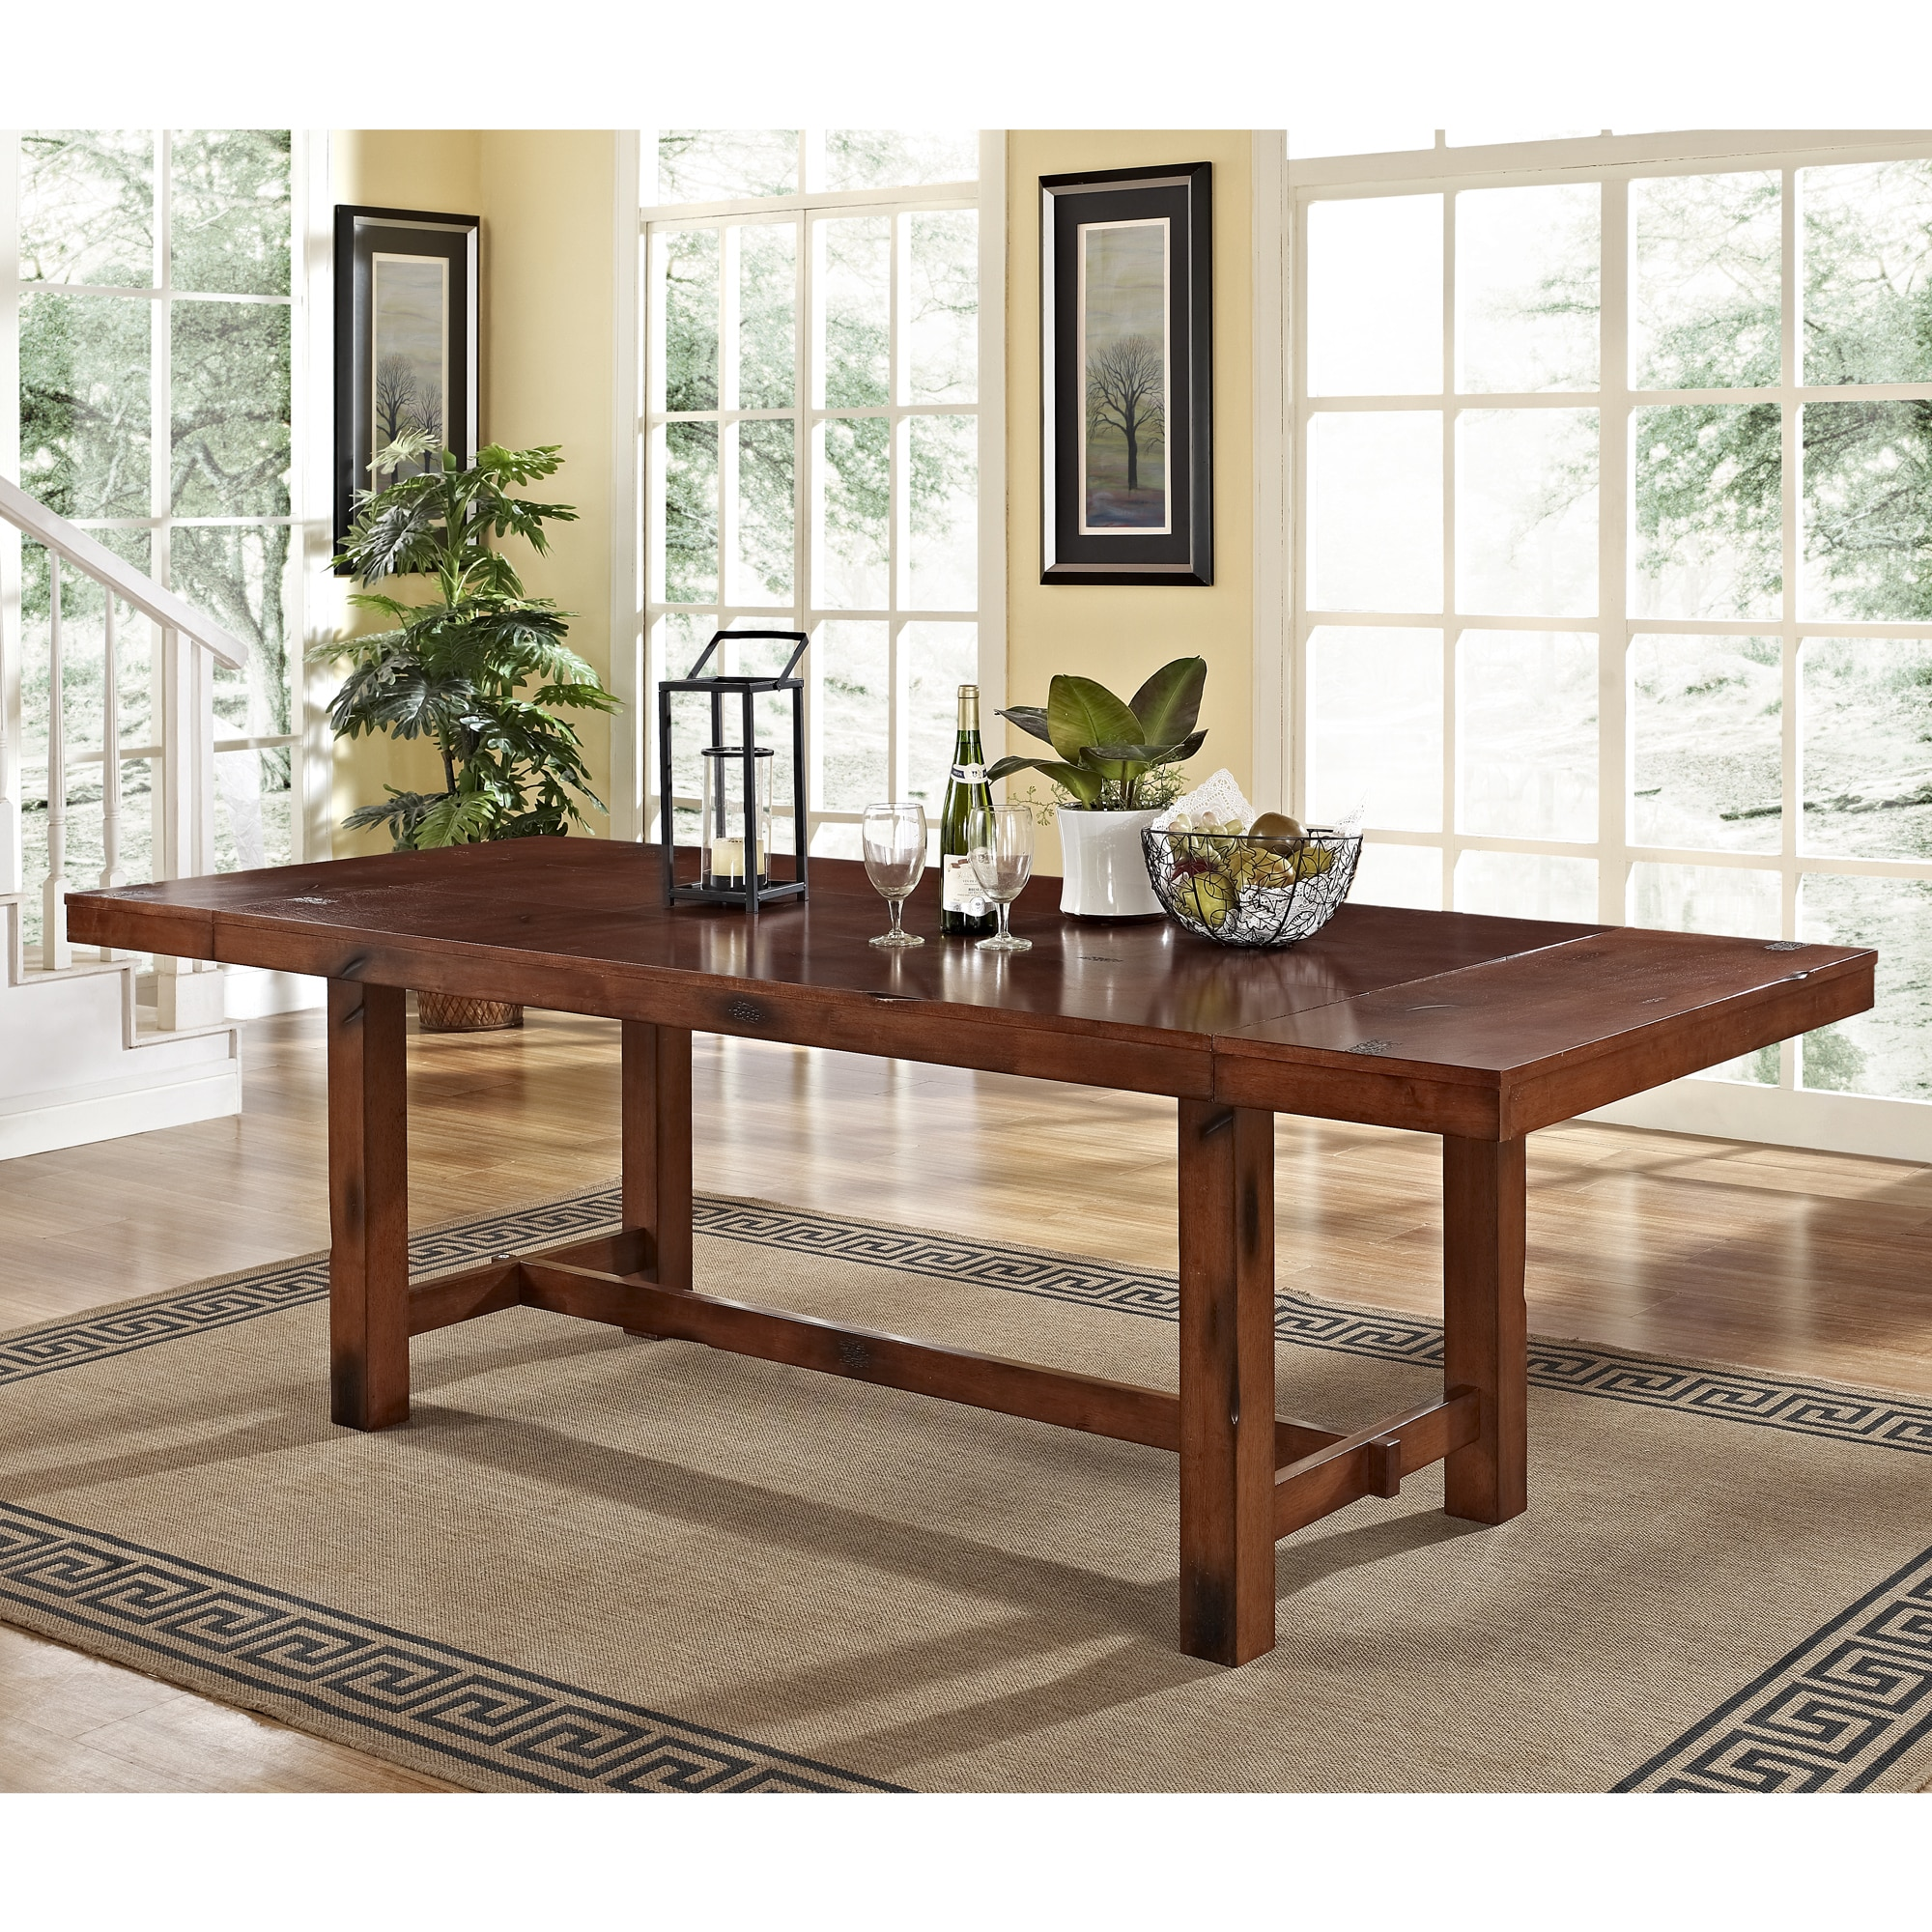 Distressed Dark Oak Wood Dining Table